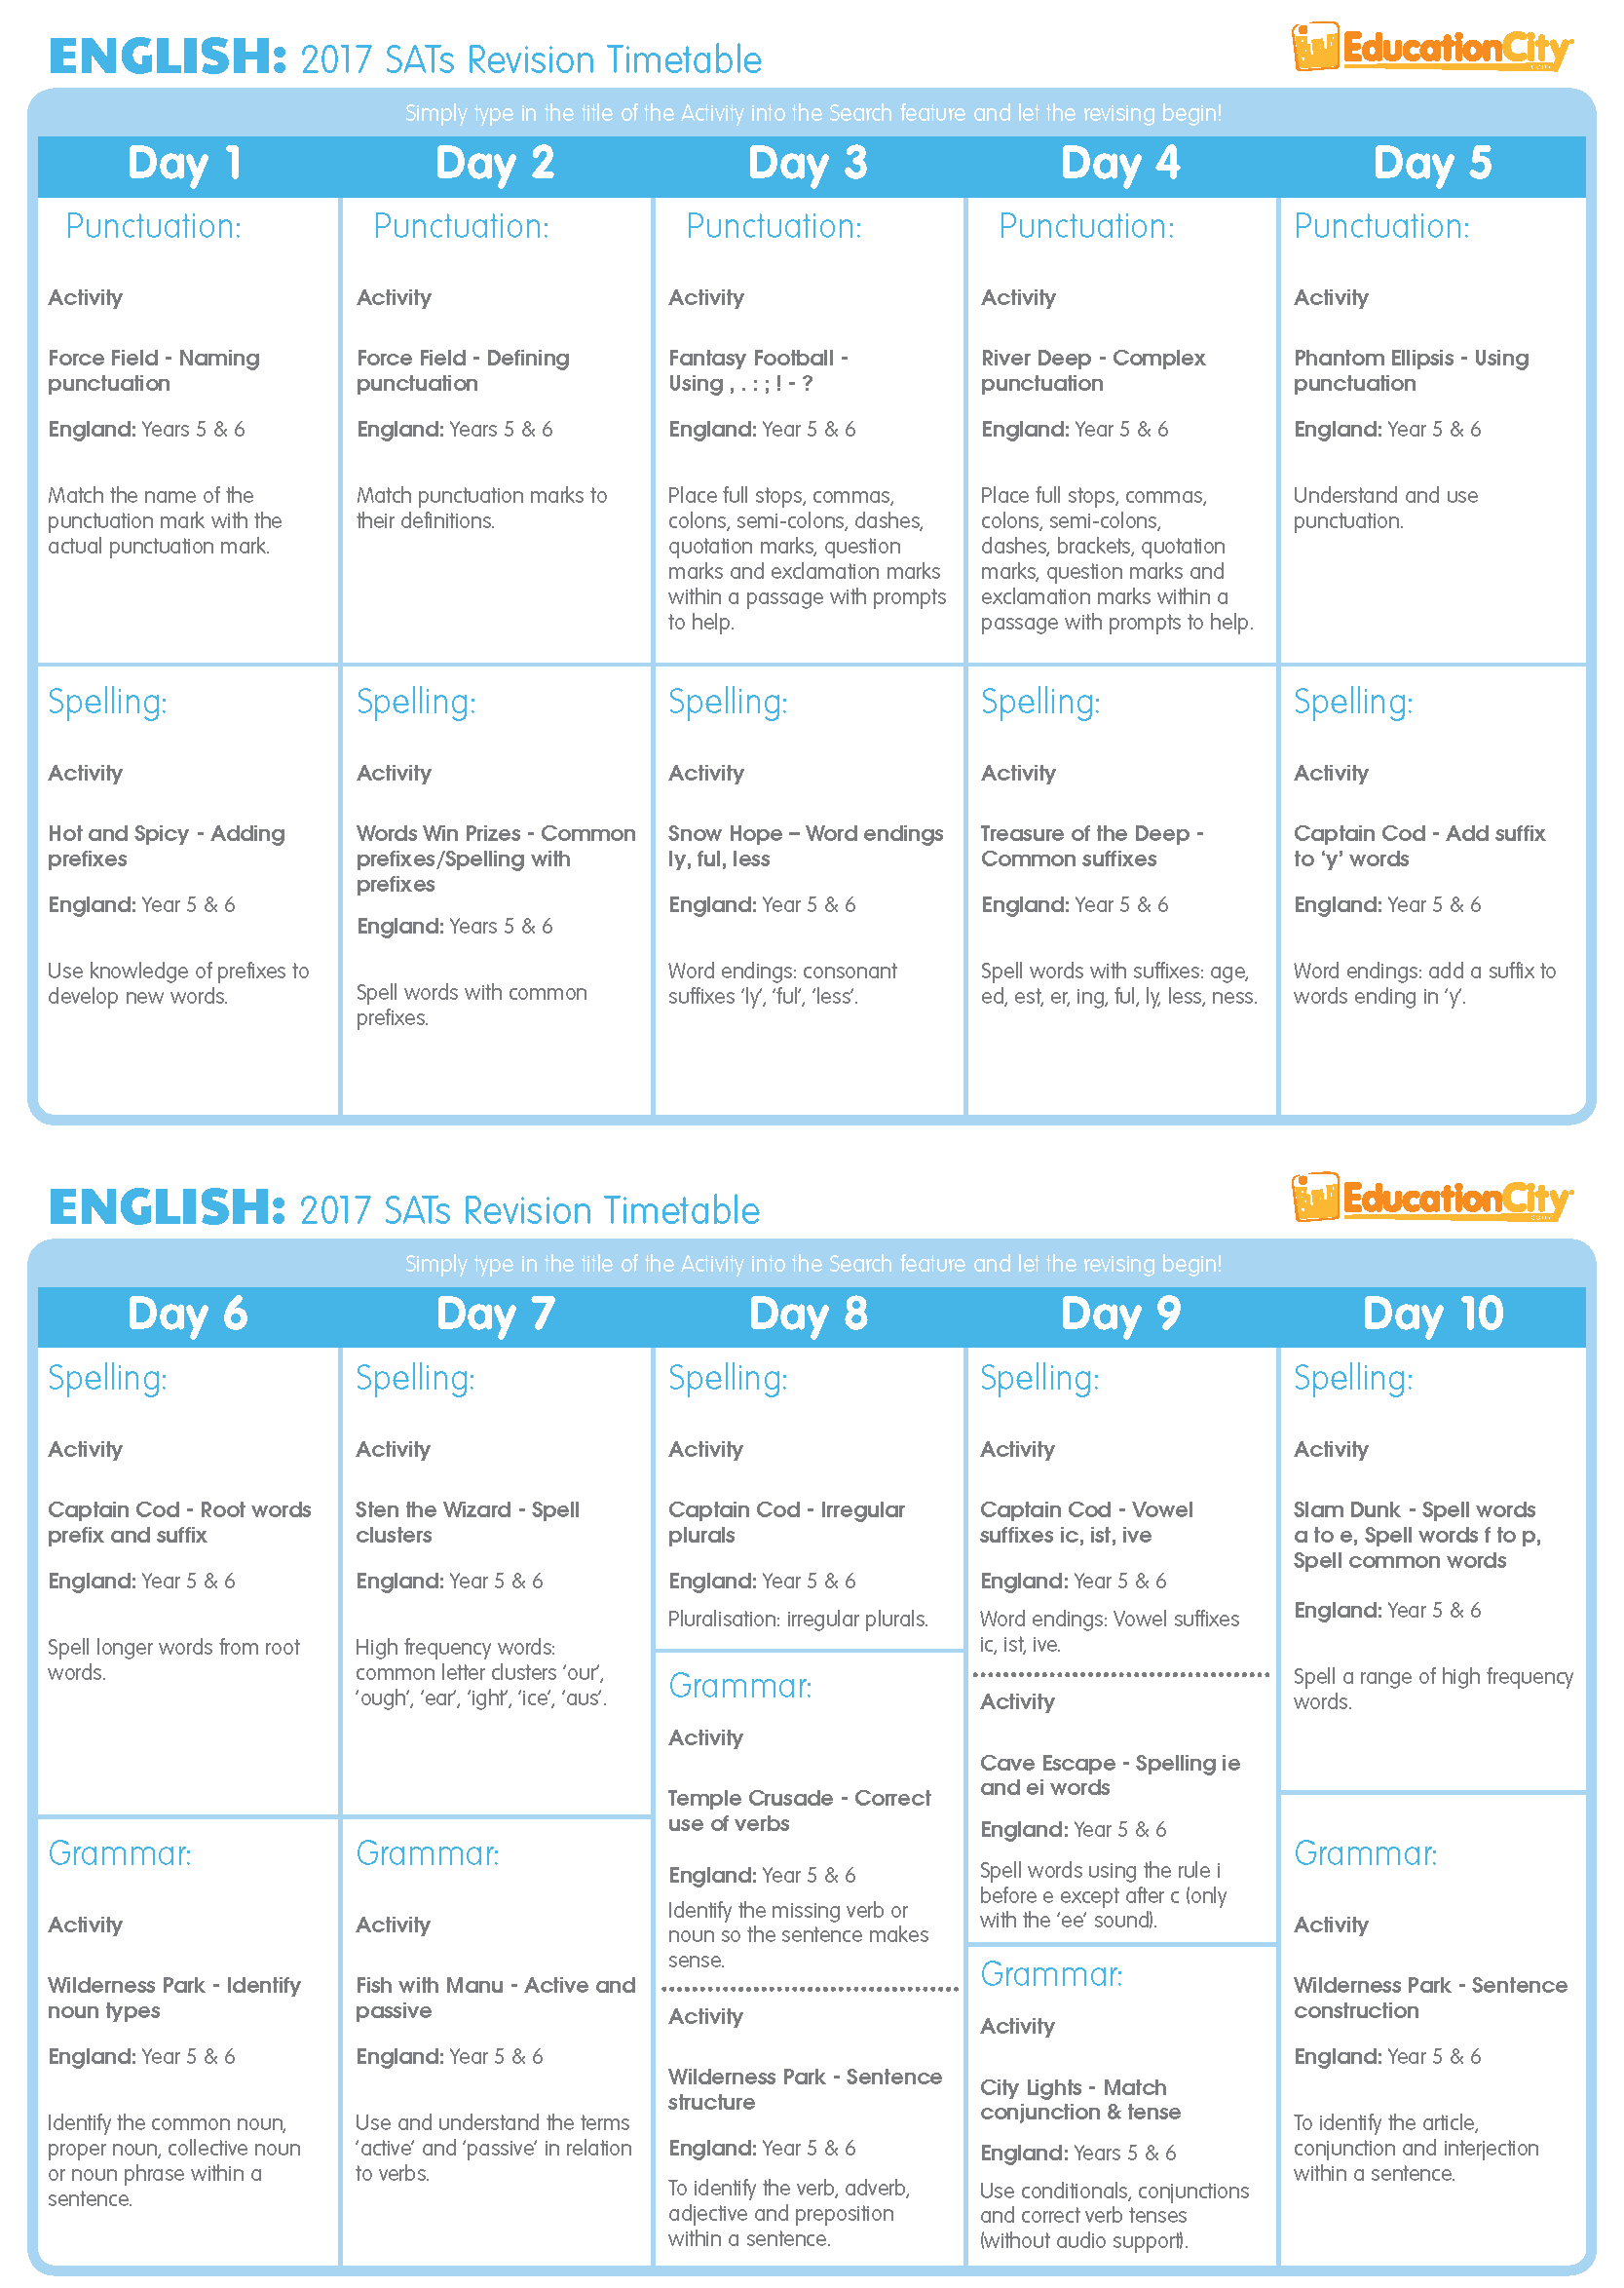 English SATs Revision Timetable